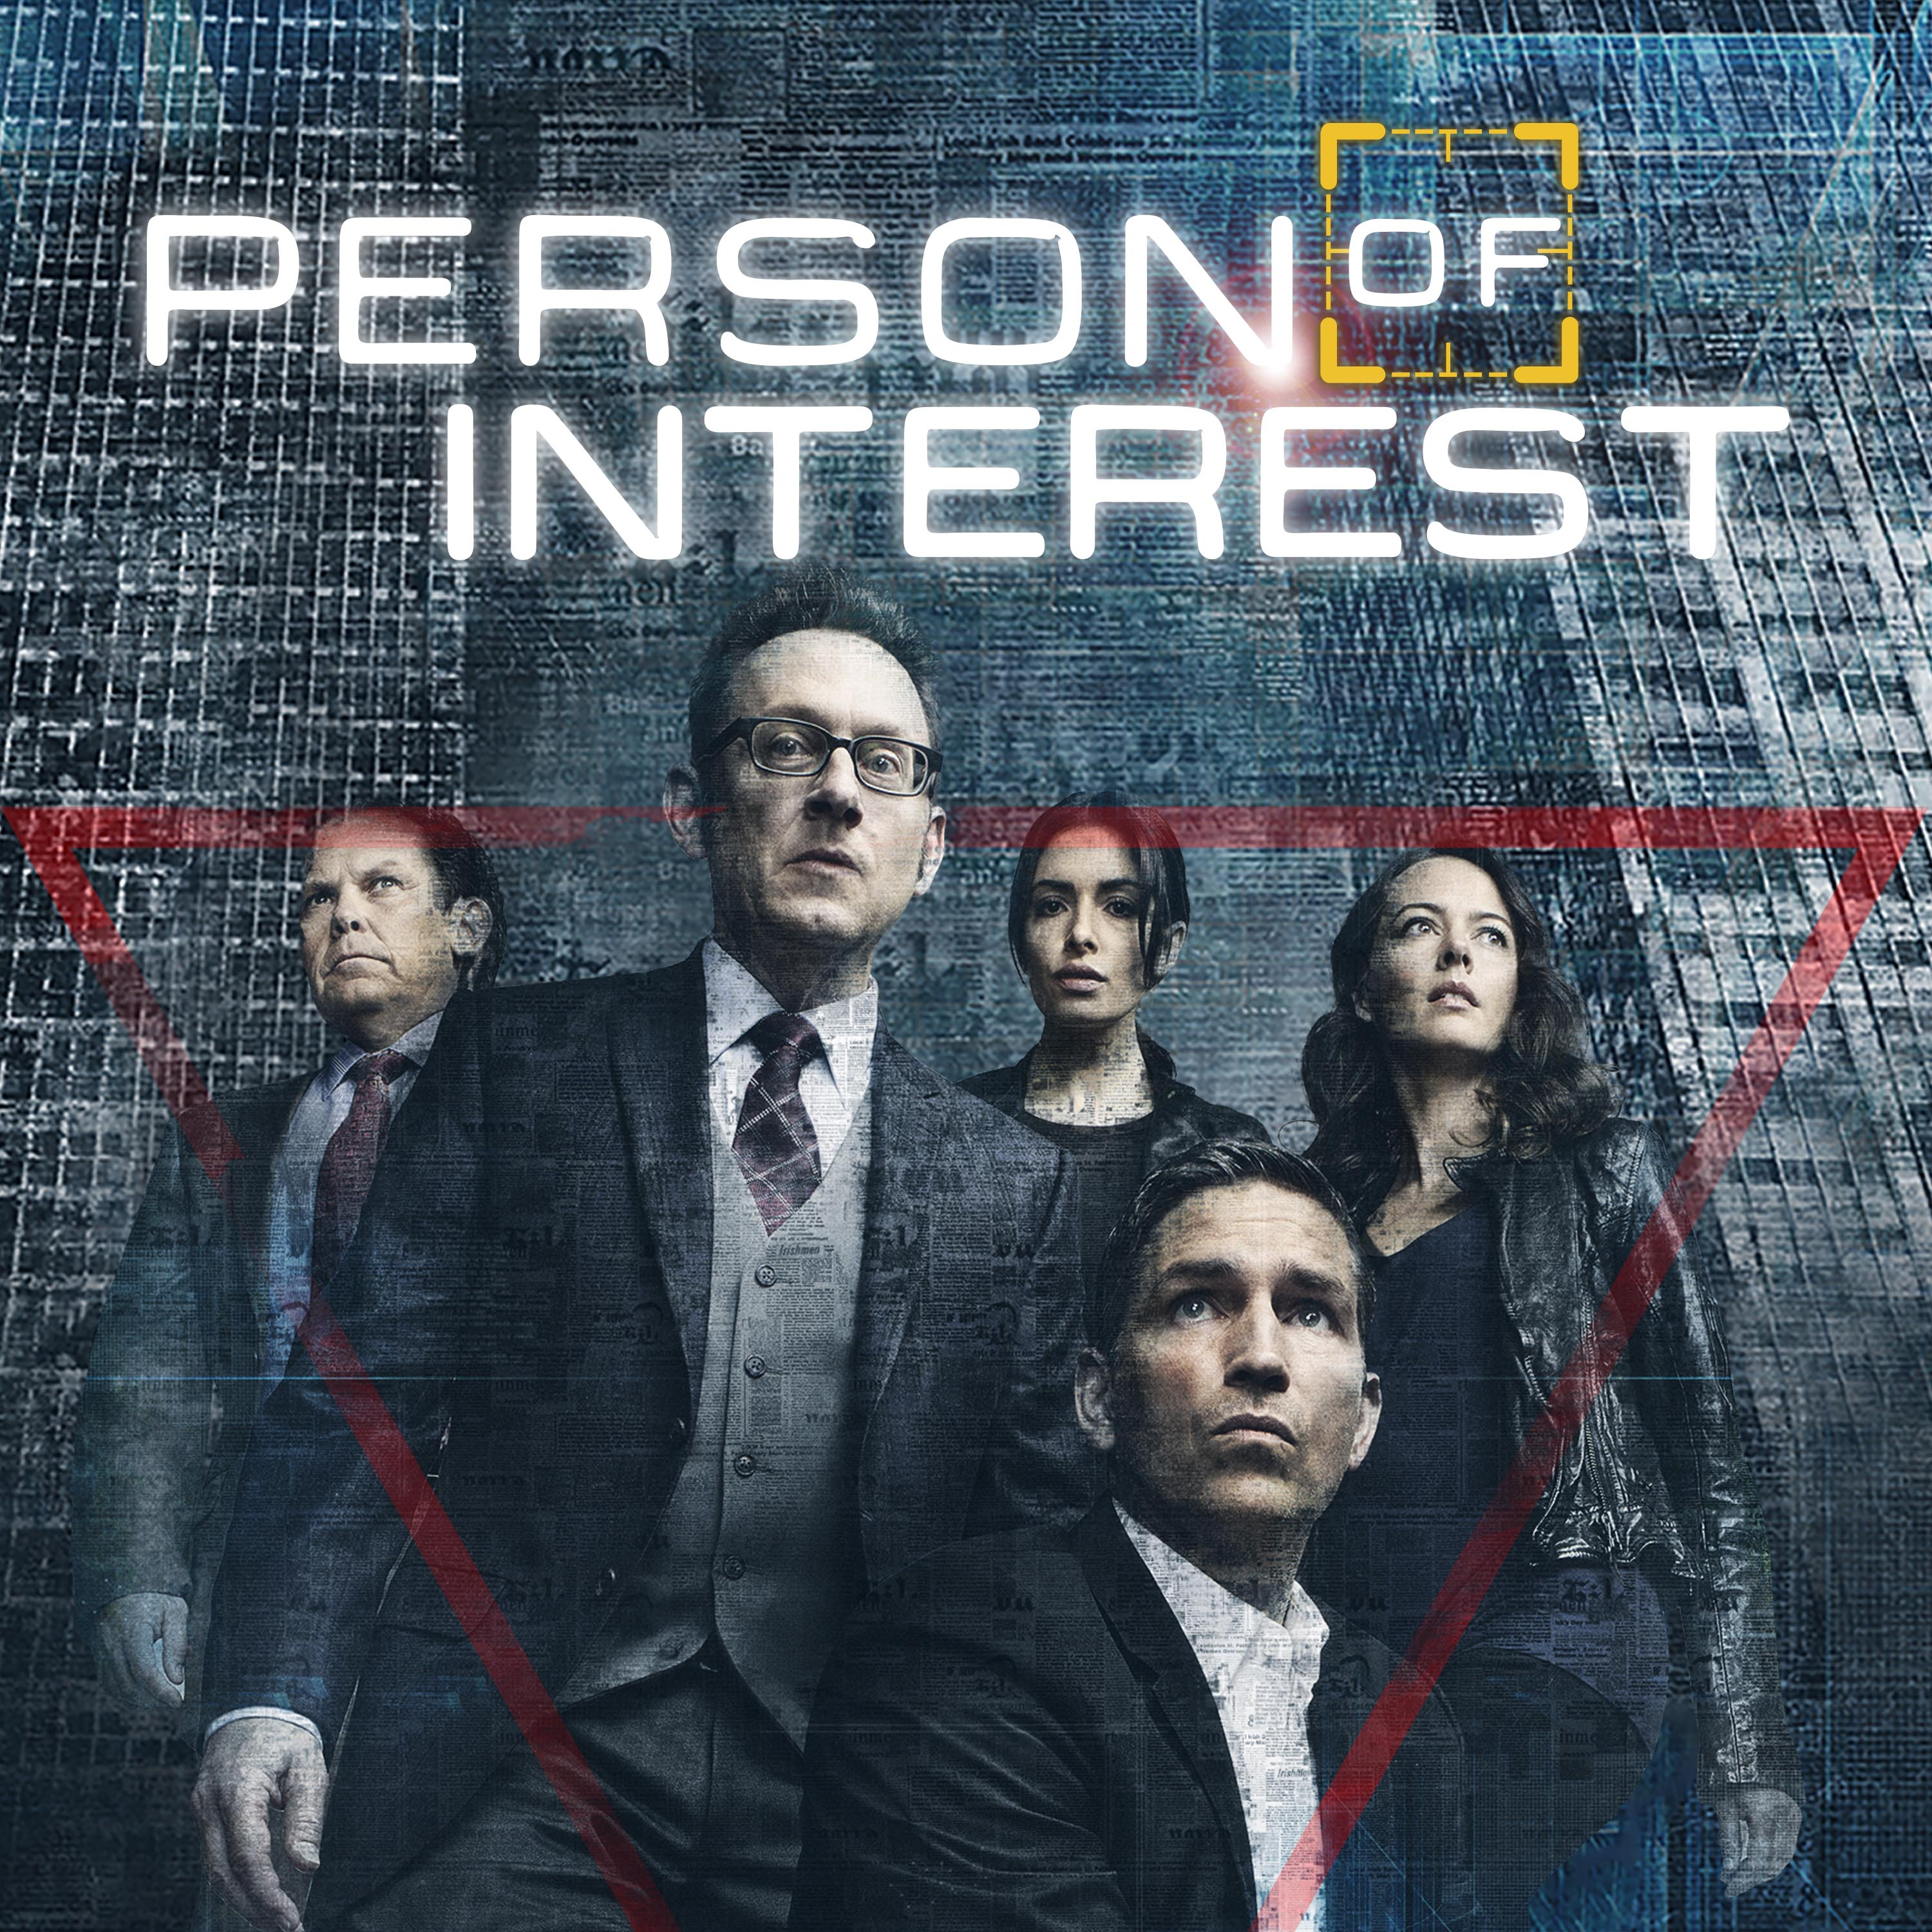 Person of Interest (Subtitled)